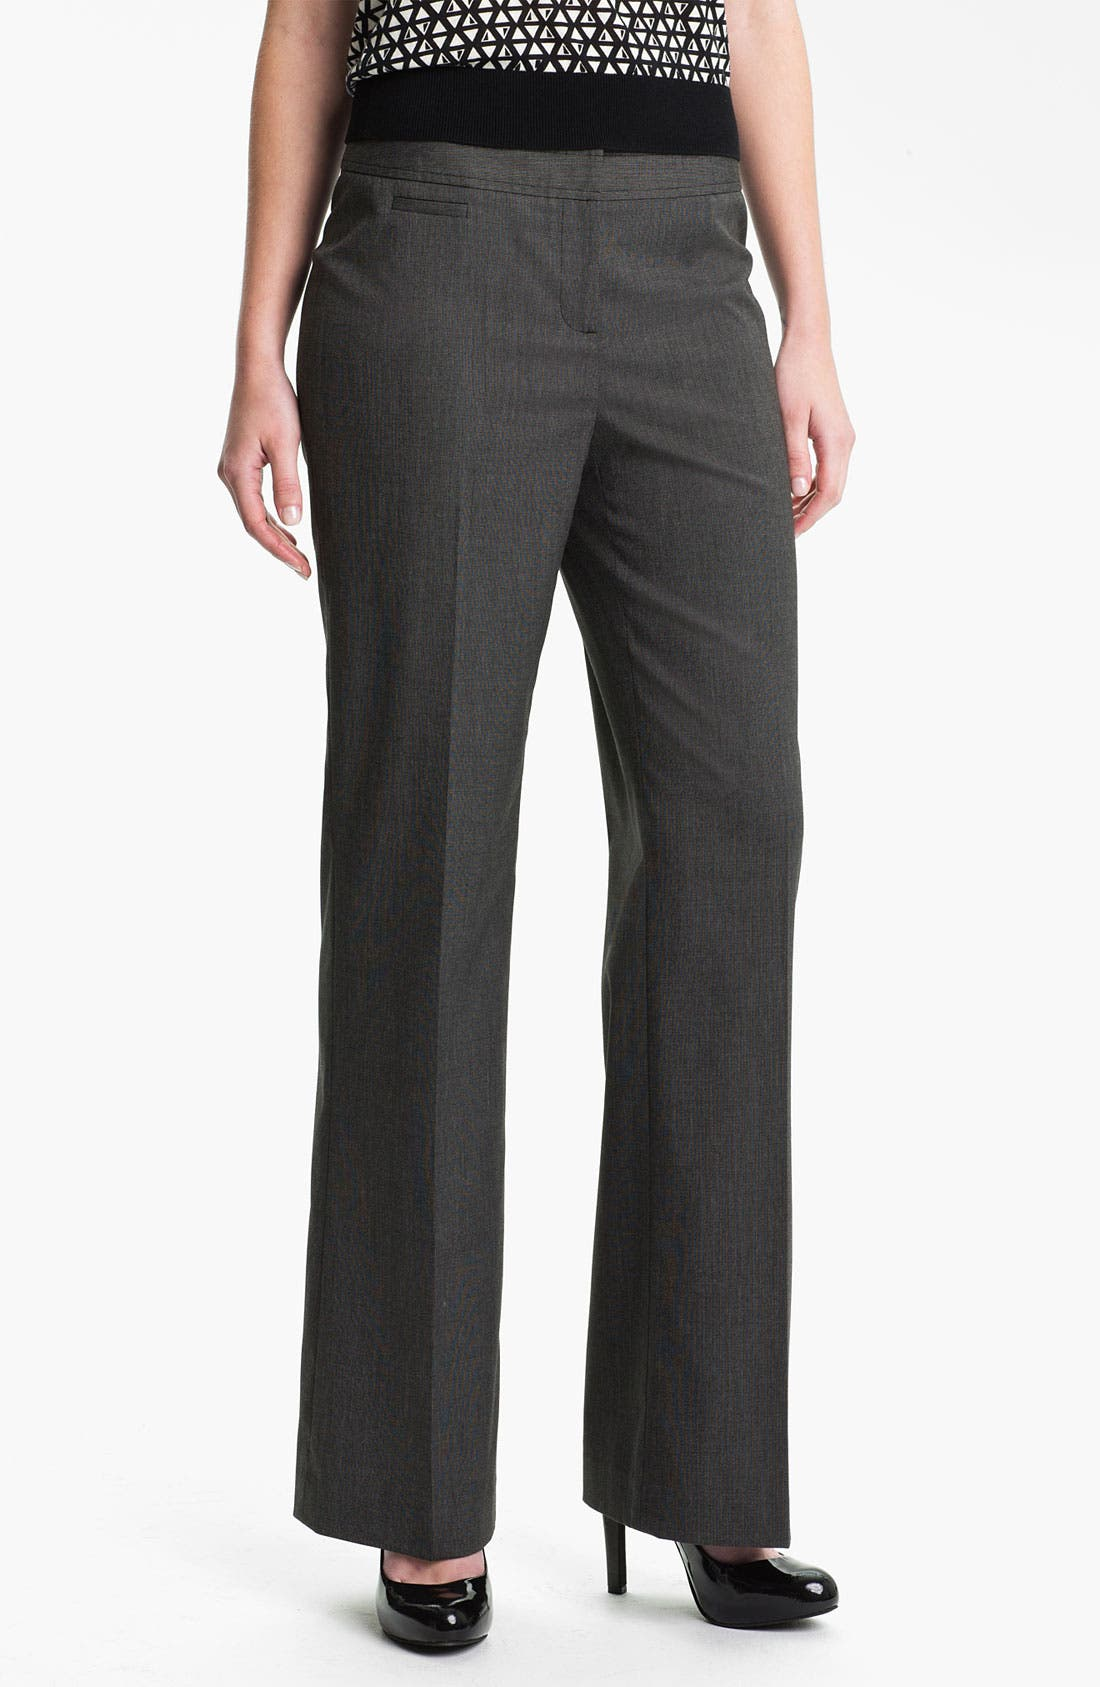 Alternate Image 1 Selected - Halogen 'Taylor - End on End' Curvy Fit Pants